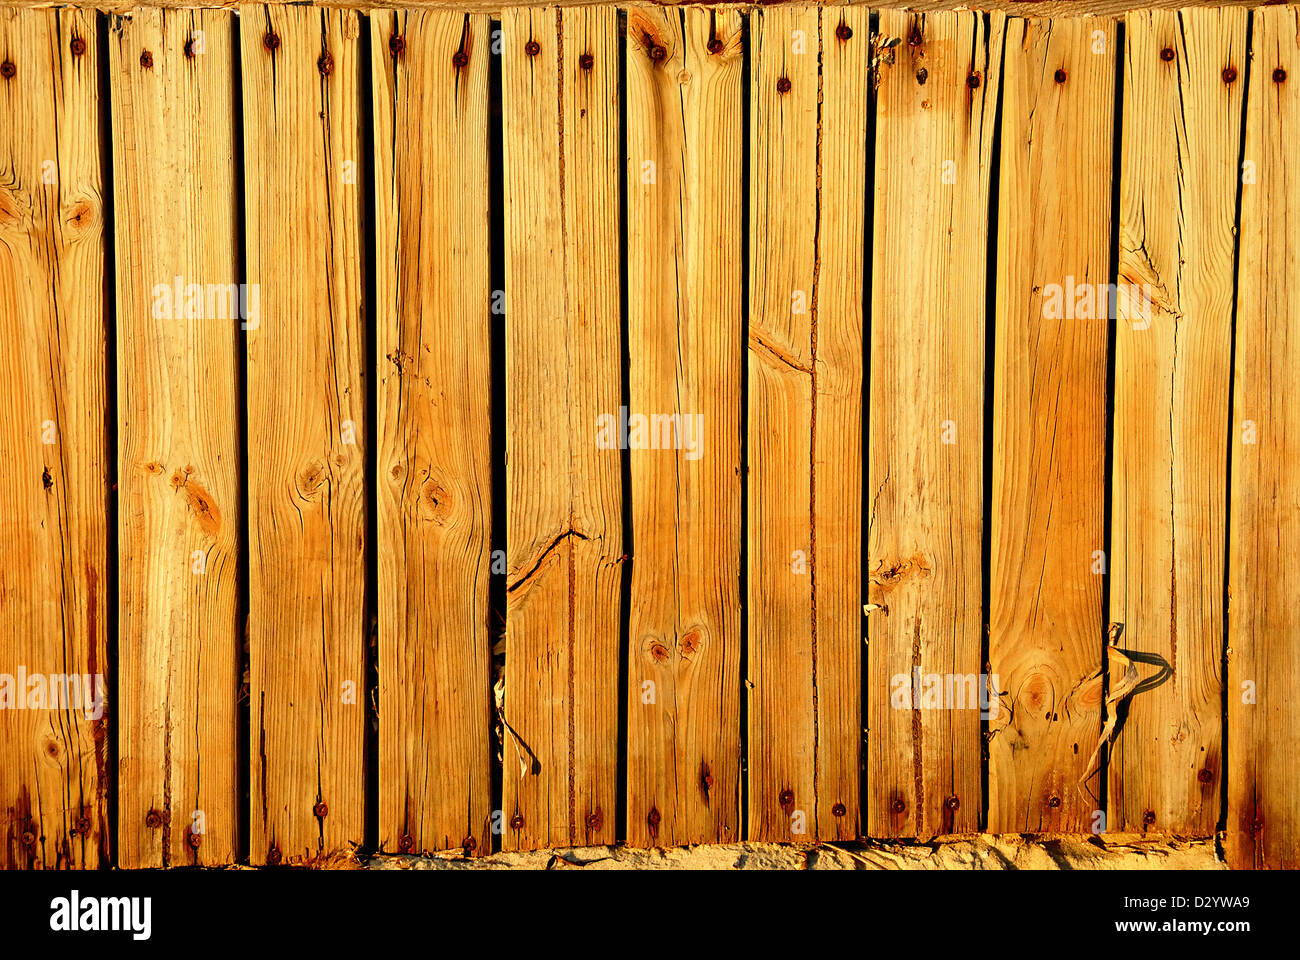 the brown wood texture with natural patterns - Stock Image